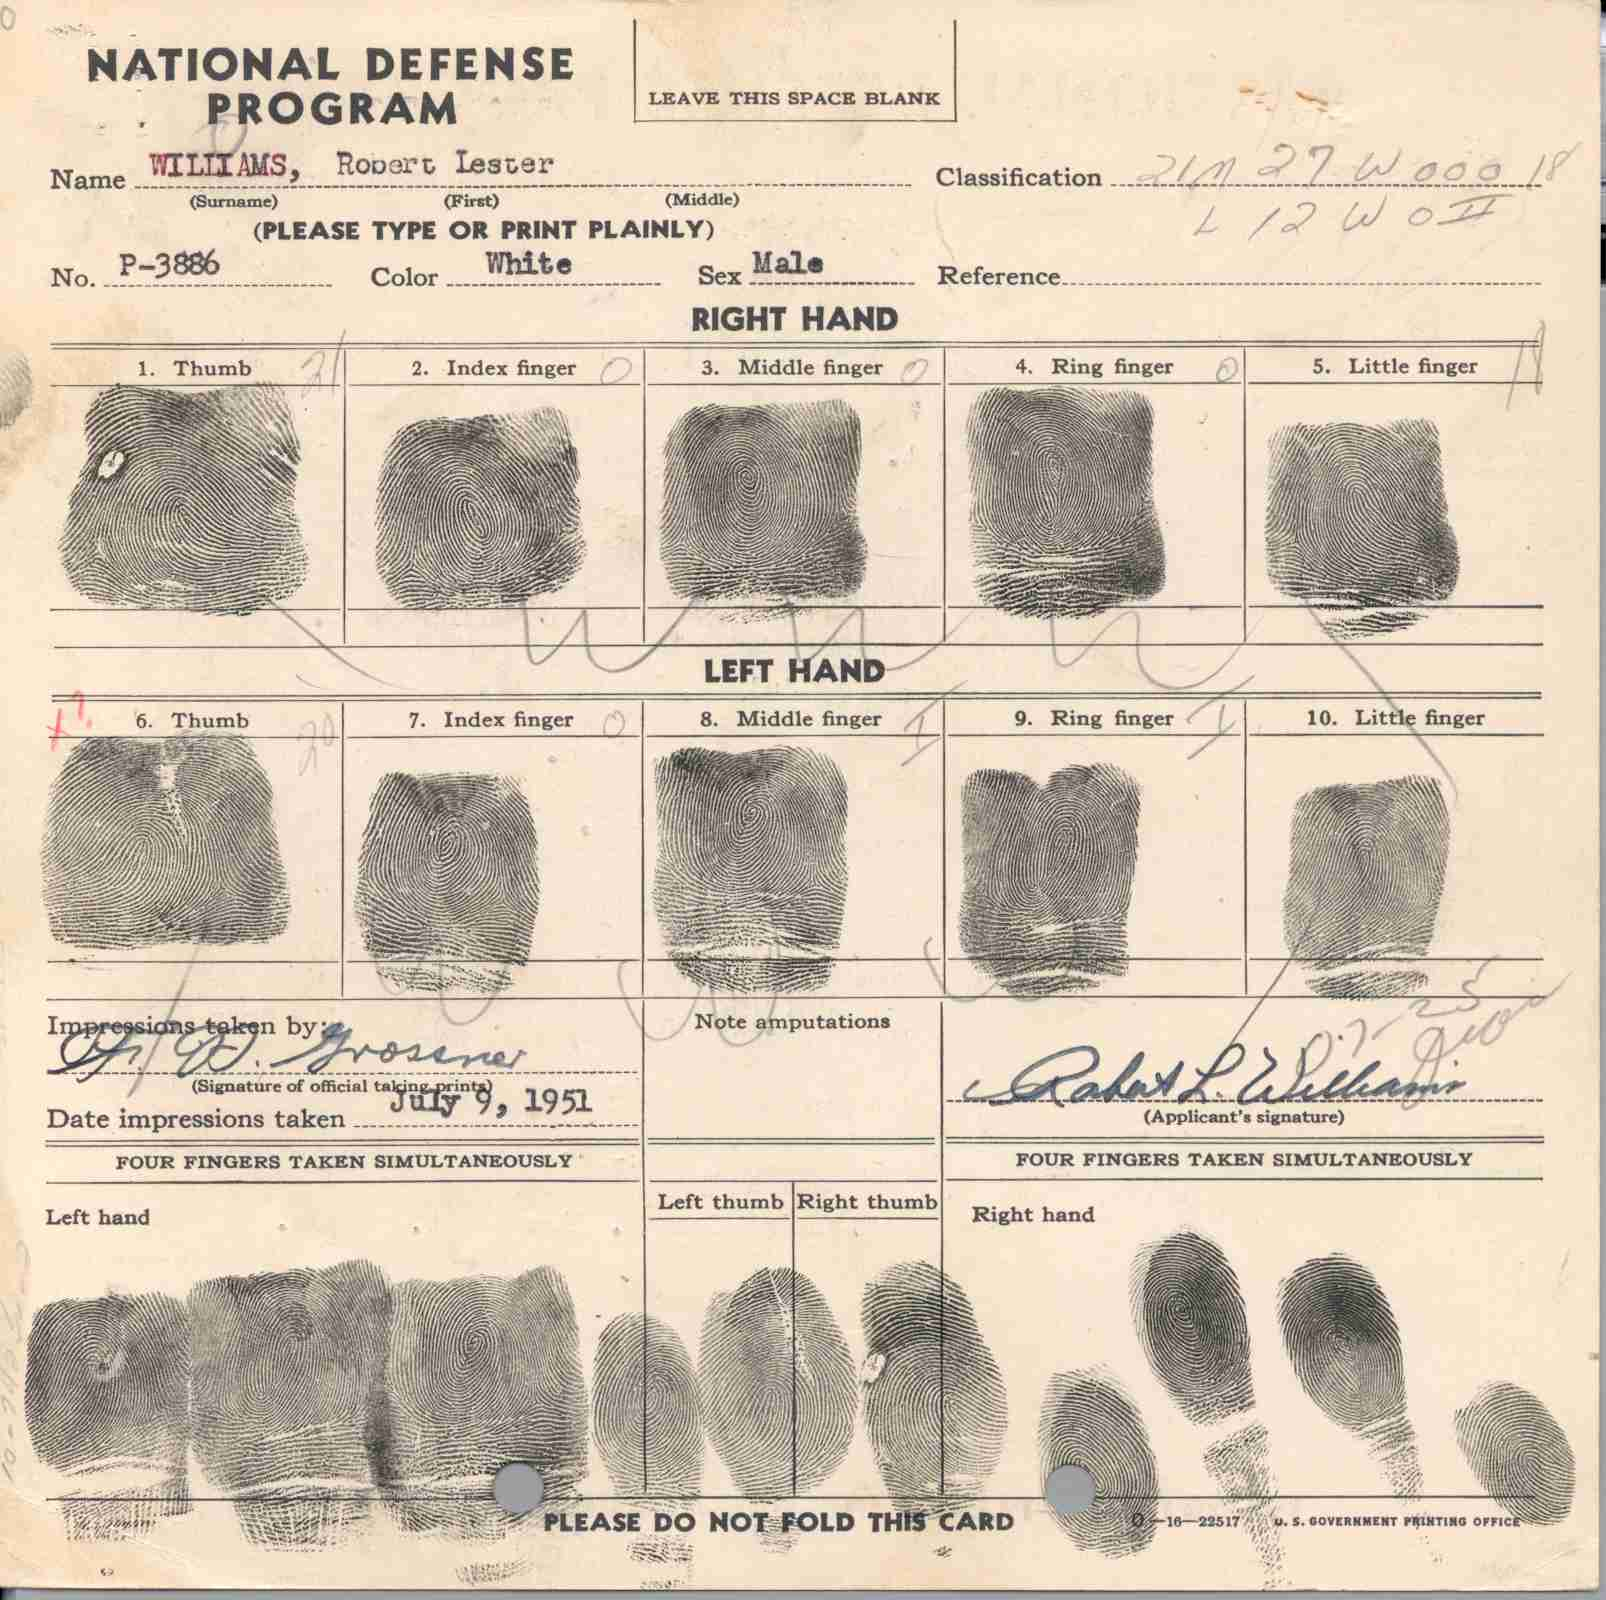 robert l williams fingerprint card.jpg